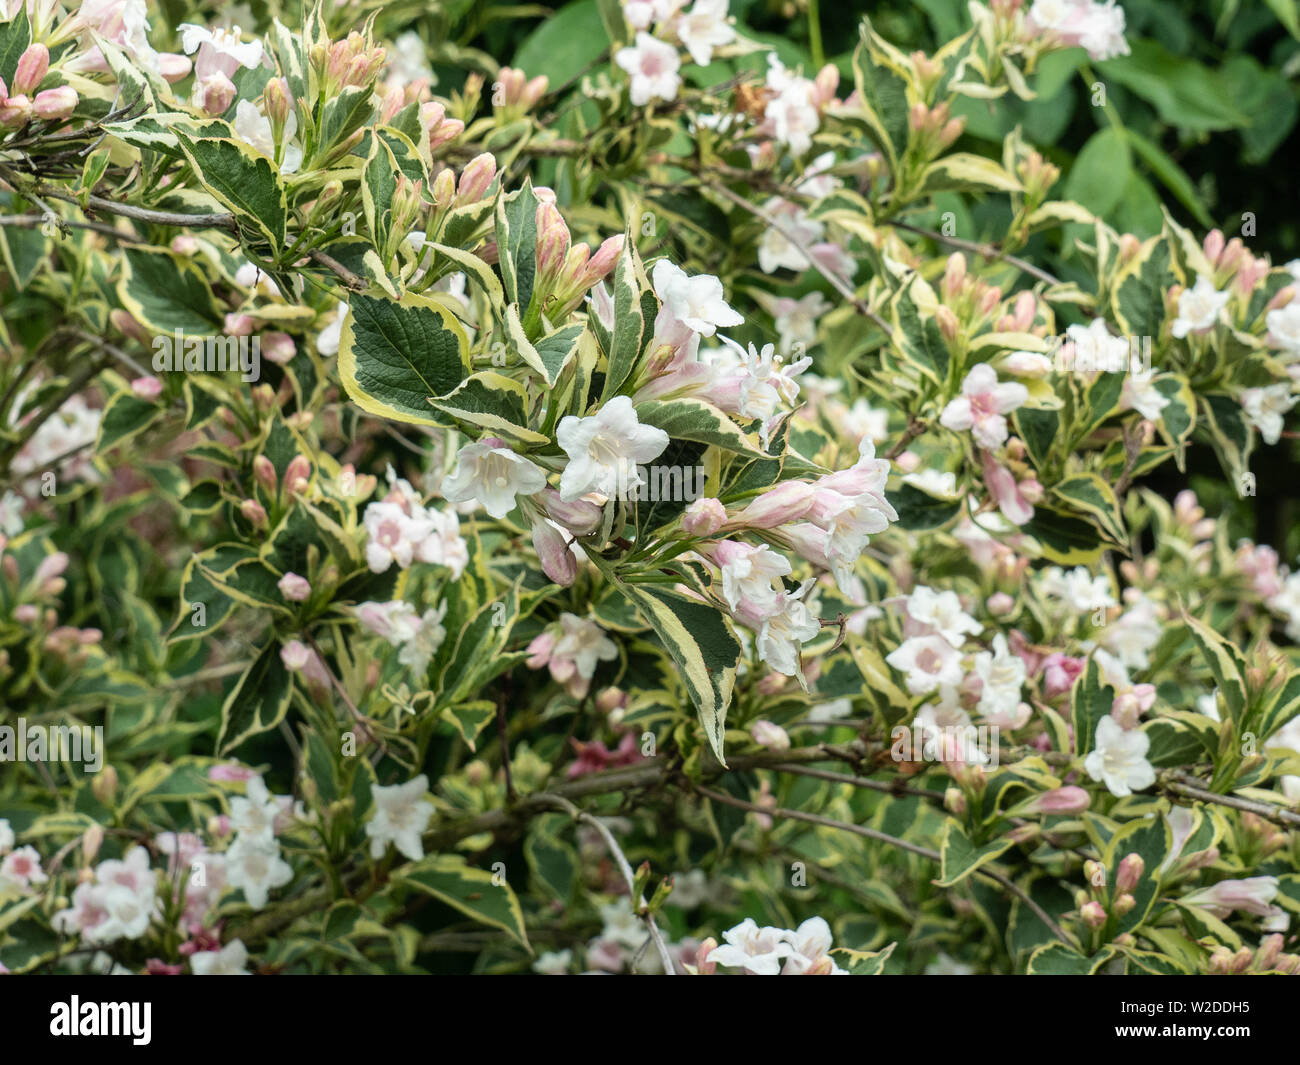 A bush of Weigela florida variegata showing the very pale pink flowers and variegated foliage Stock Photo